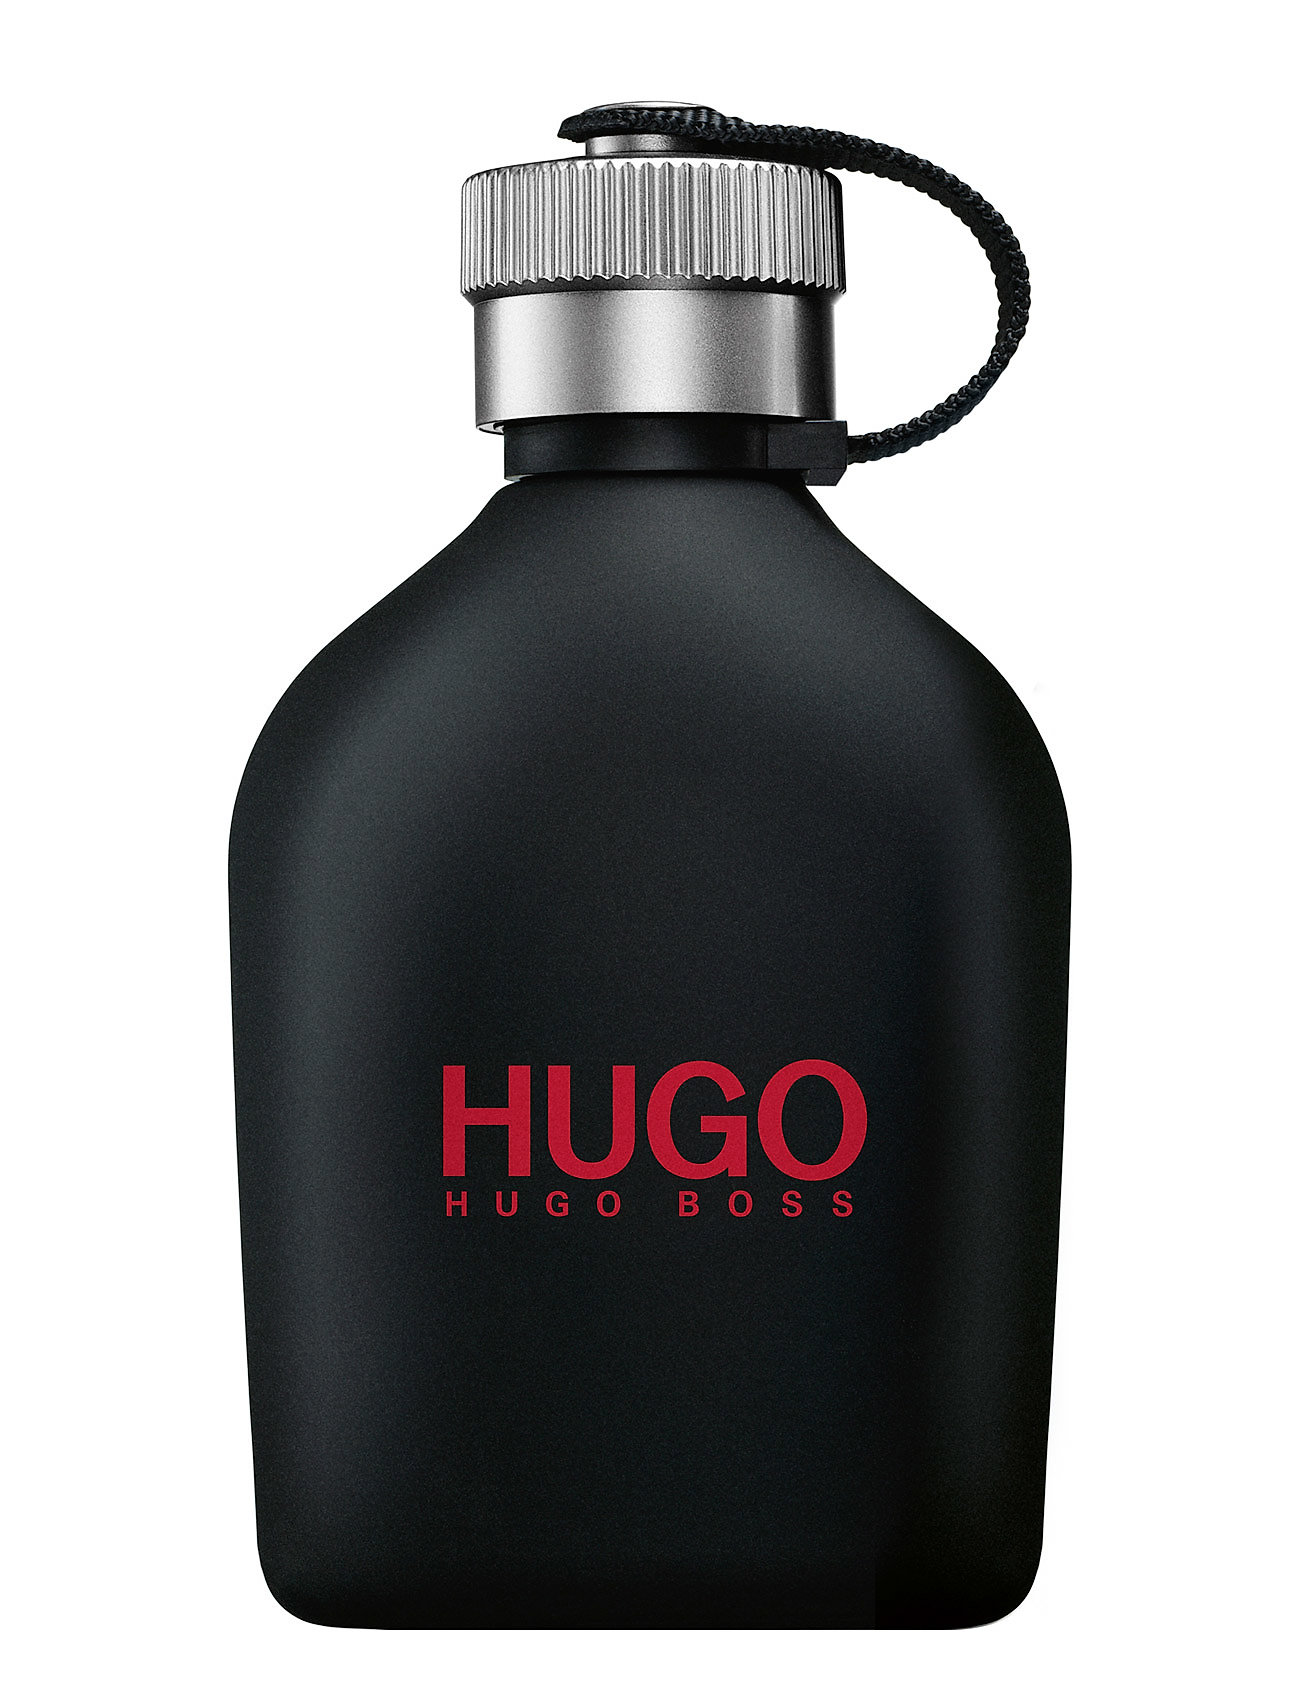 hugo boss fragrance – Hugo just different eau d fra boozt.com dk